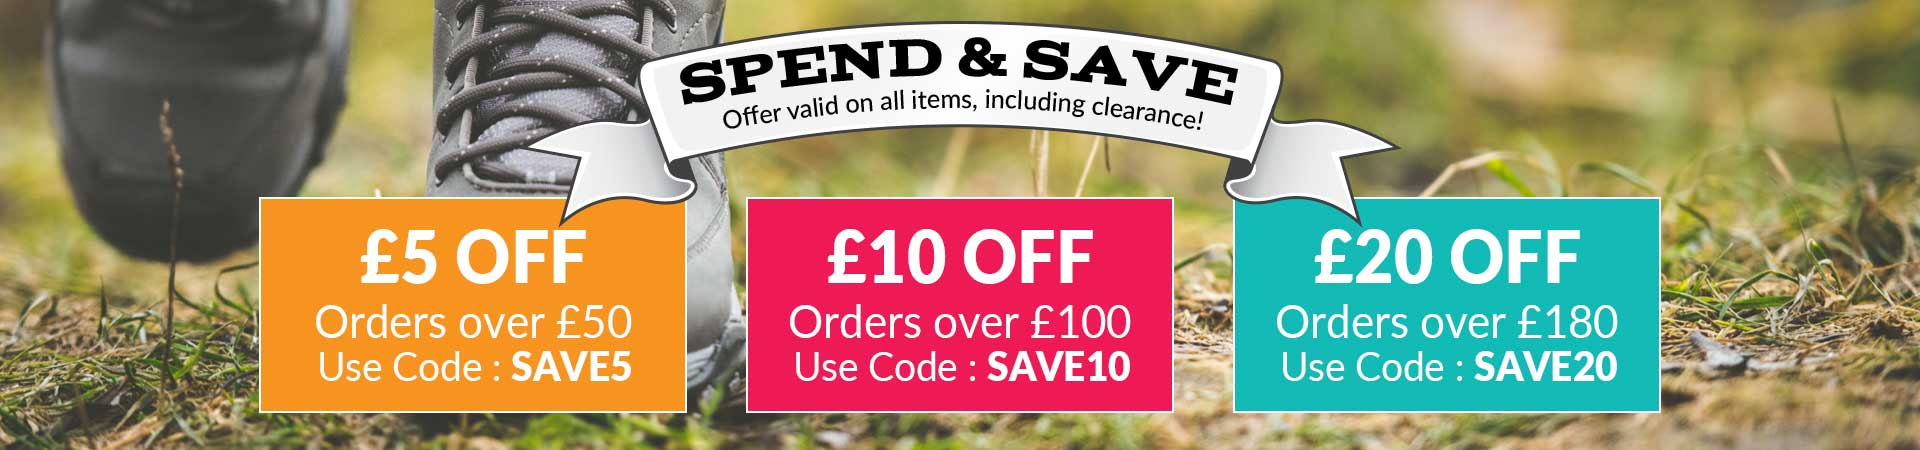 Spend & Save, use code for an extra £20 off